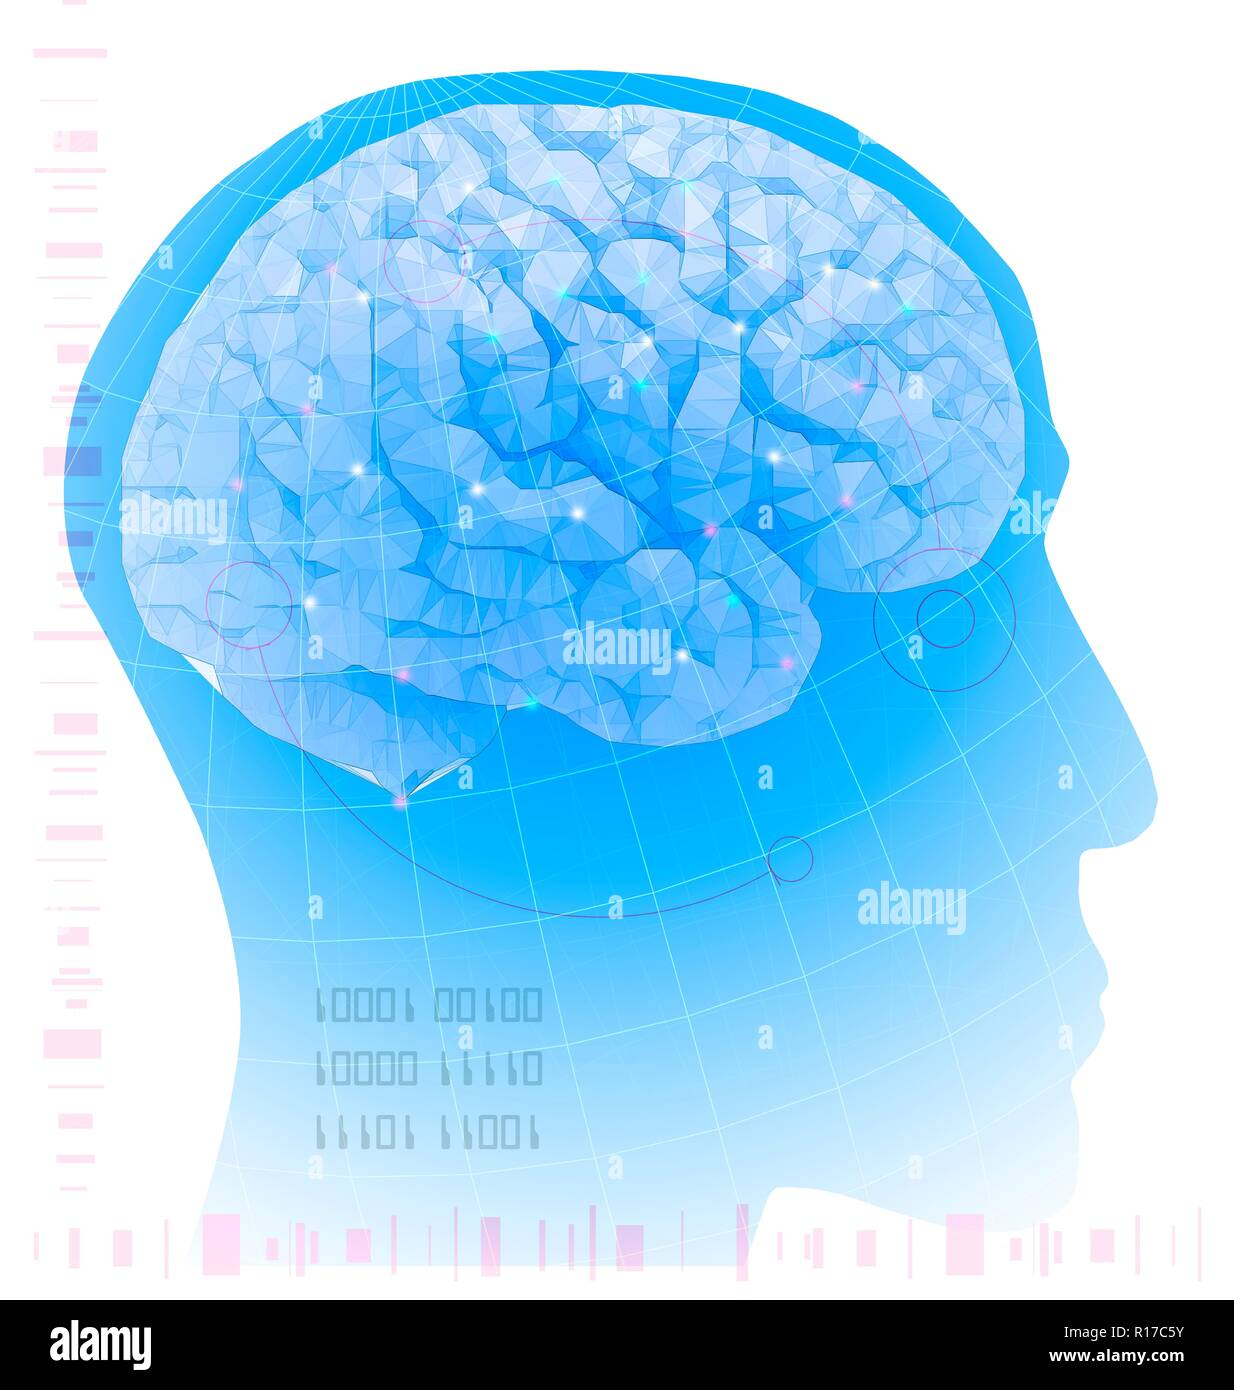 Artificial intelligence. Conceptual illustration of a human head overlaid with a stylised brain, representing artificial intelligence, the simulation of human intelligence by a machine. Binary numbers, which contain only 1 and 0, form the language of computers. Artificial intelligence is usually taken to mean a computer or machine that can think and learn independently of its original program. - Stock Image